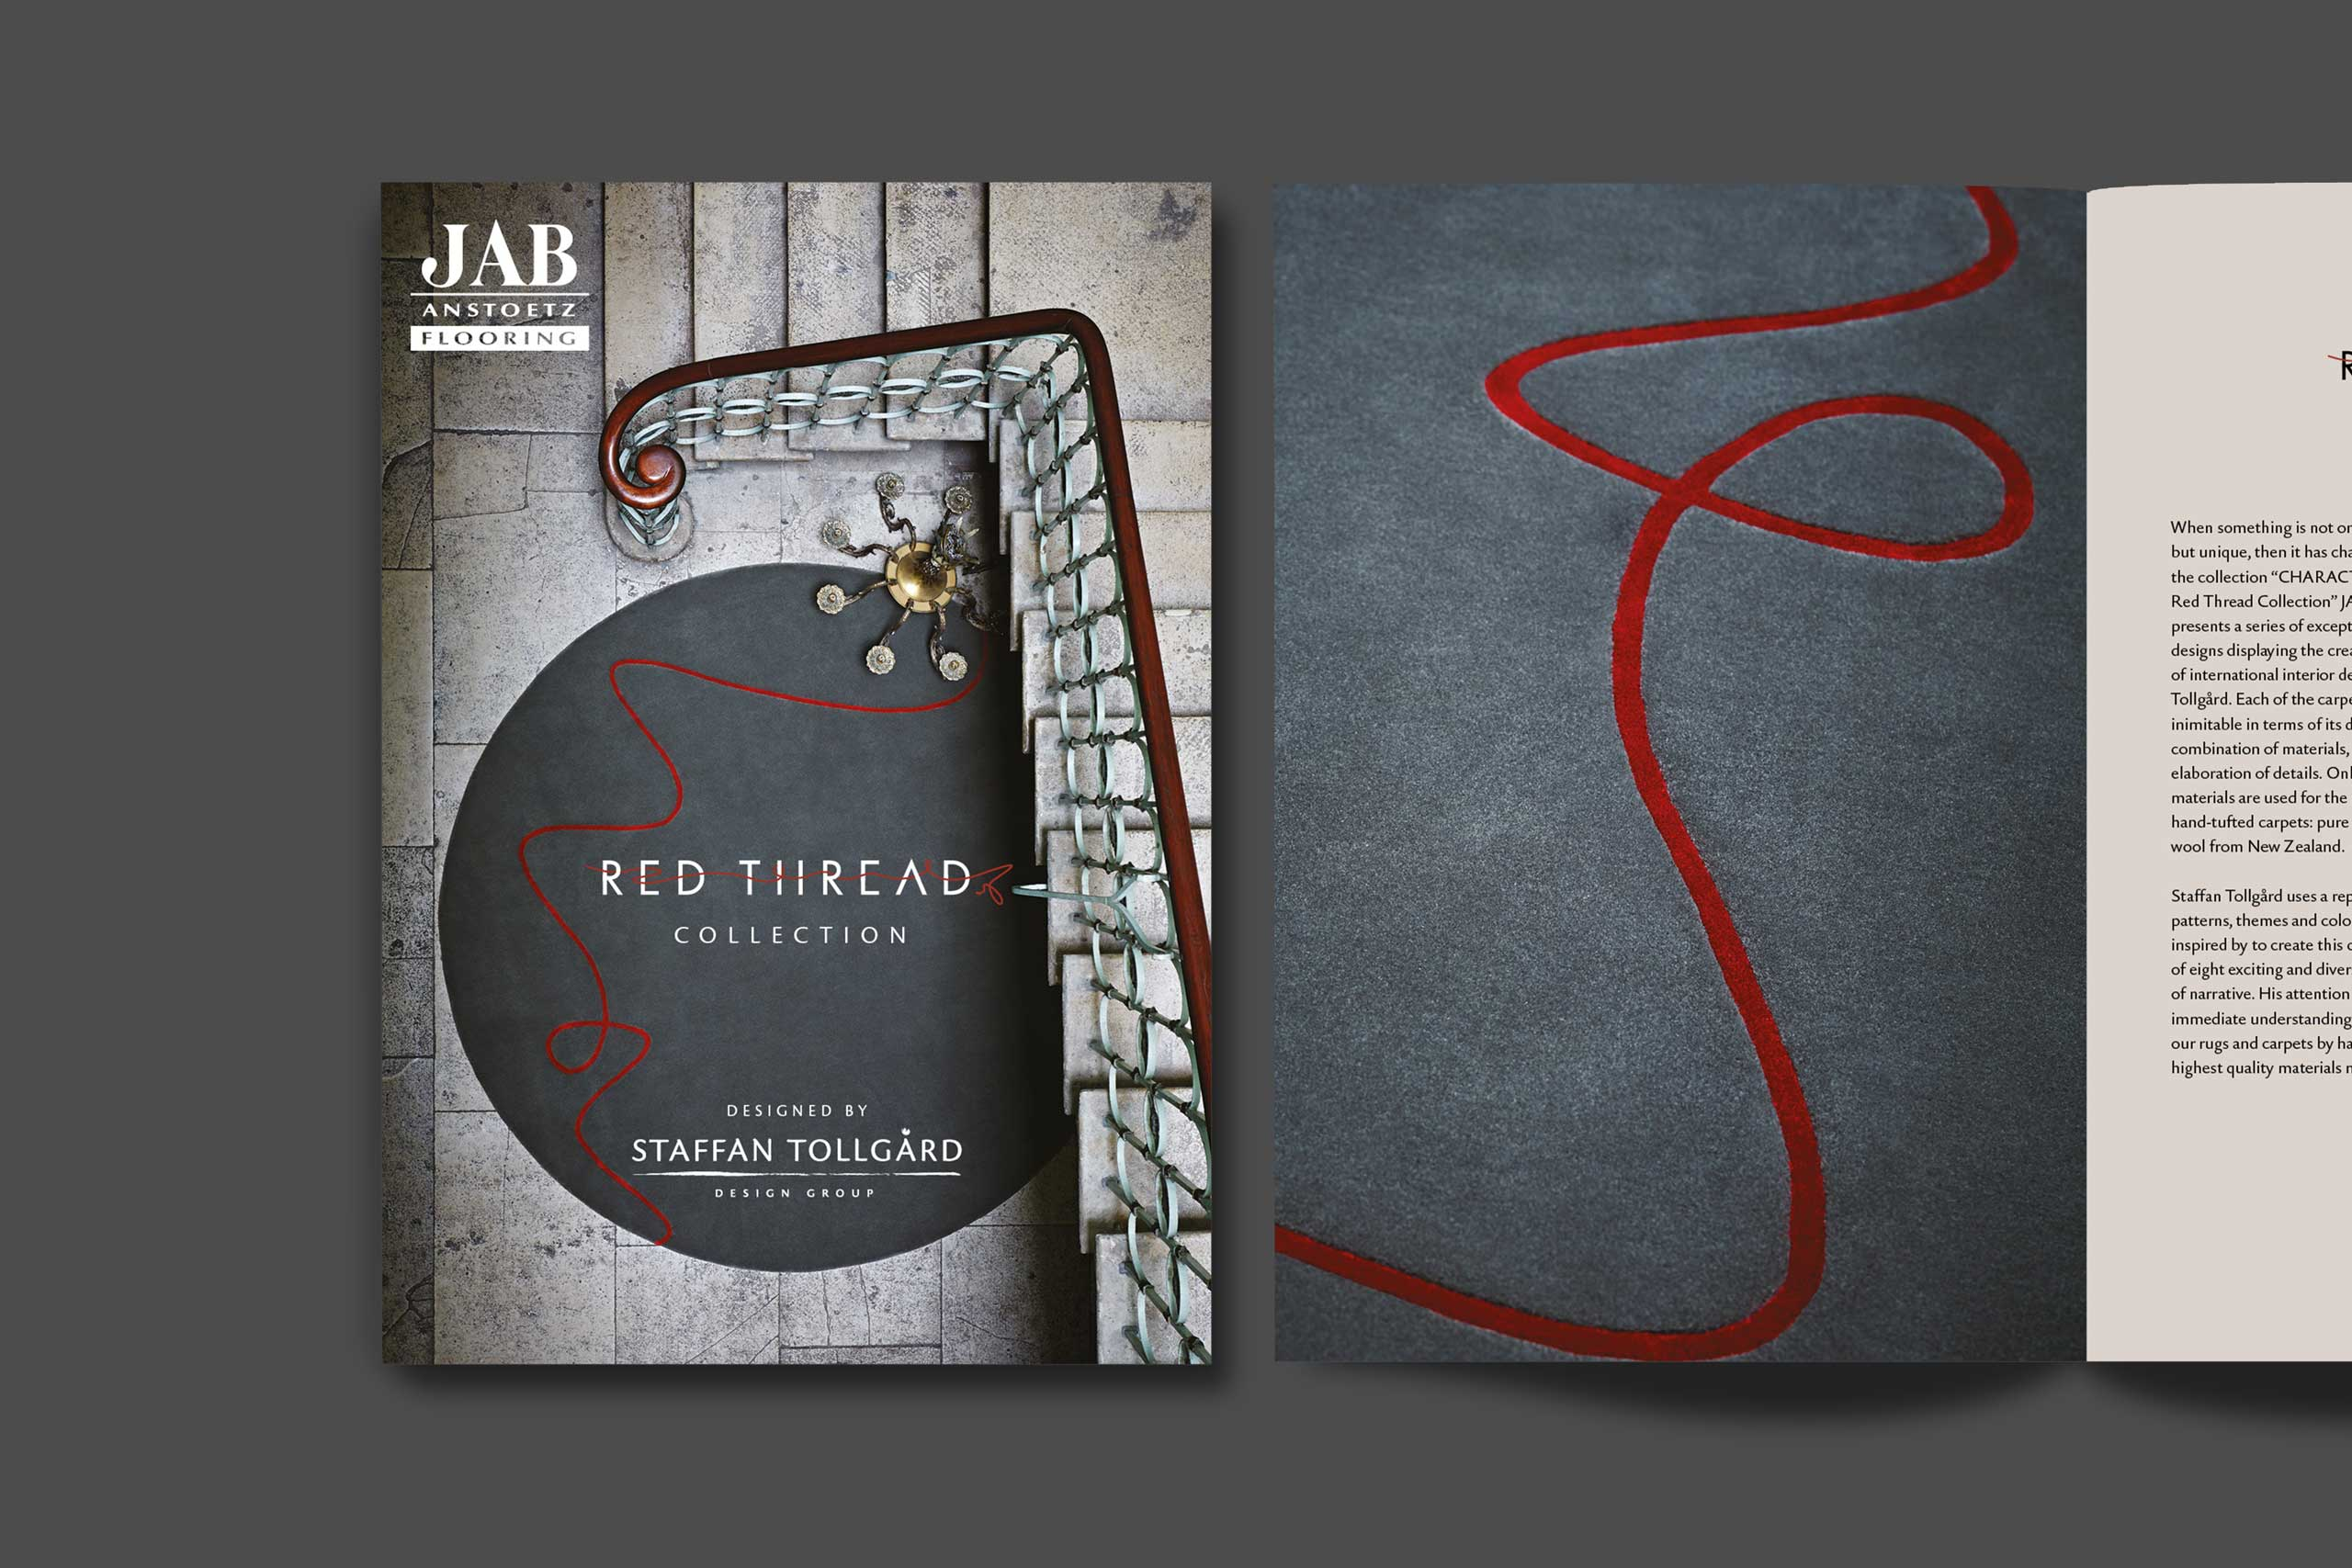 Jab rugs Interior product sales literature with Staffan Tollgärd cover and spread